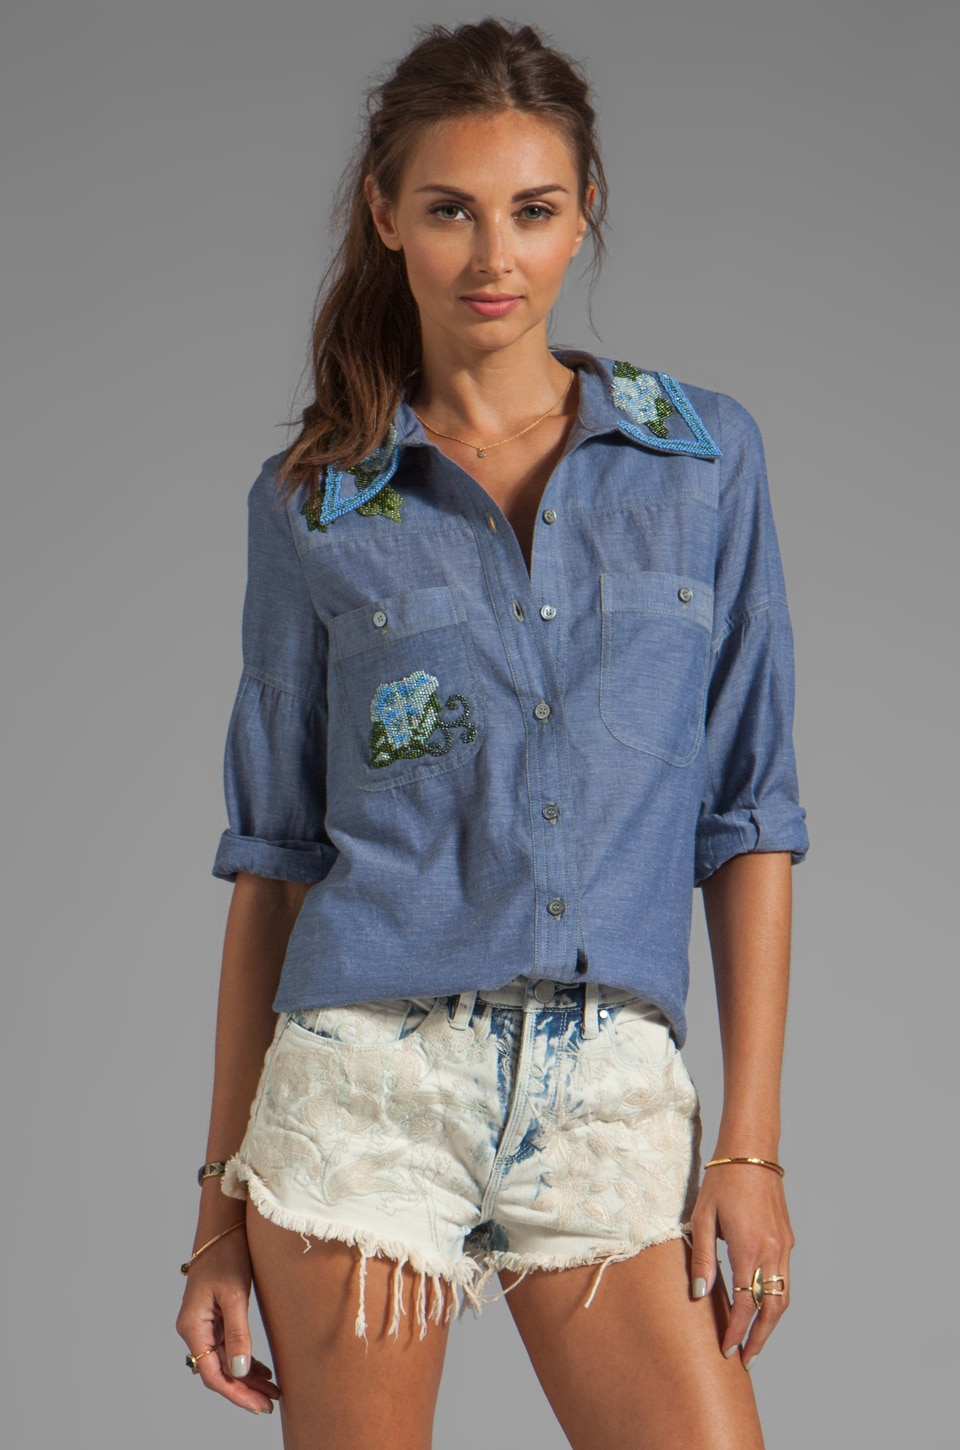 Anna Sui Embellished Chambray Top in Indigo Multi